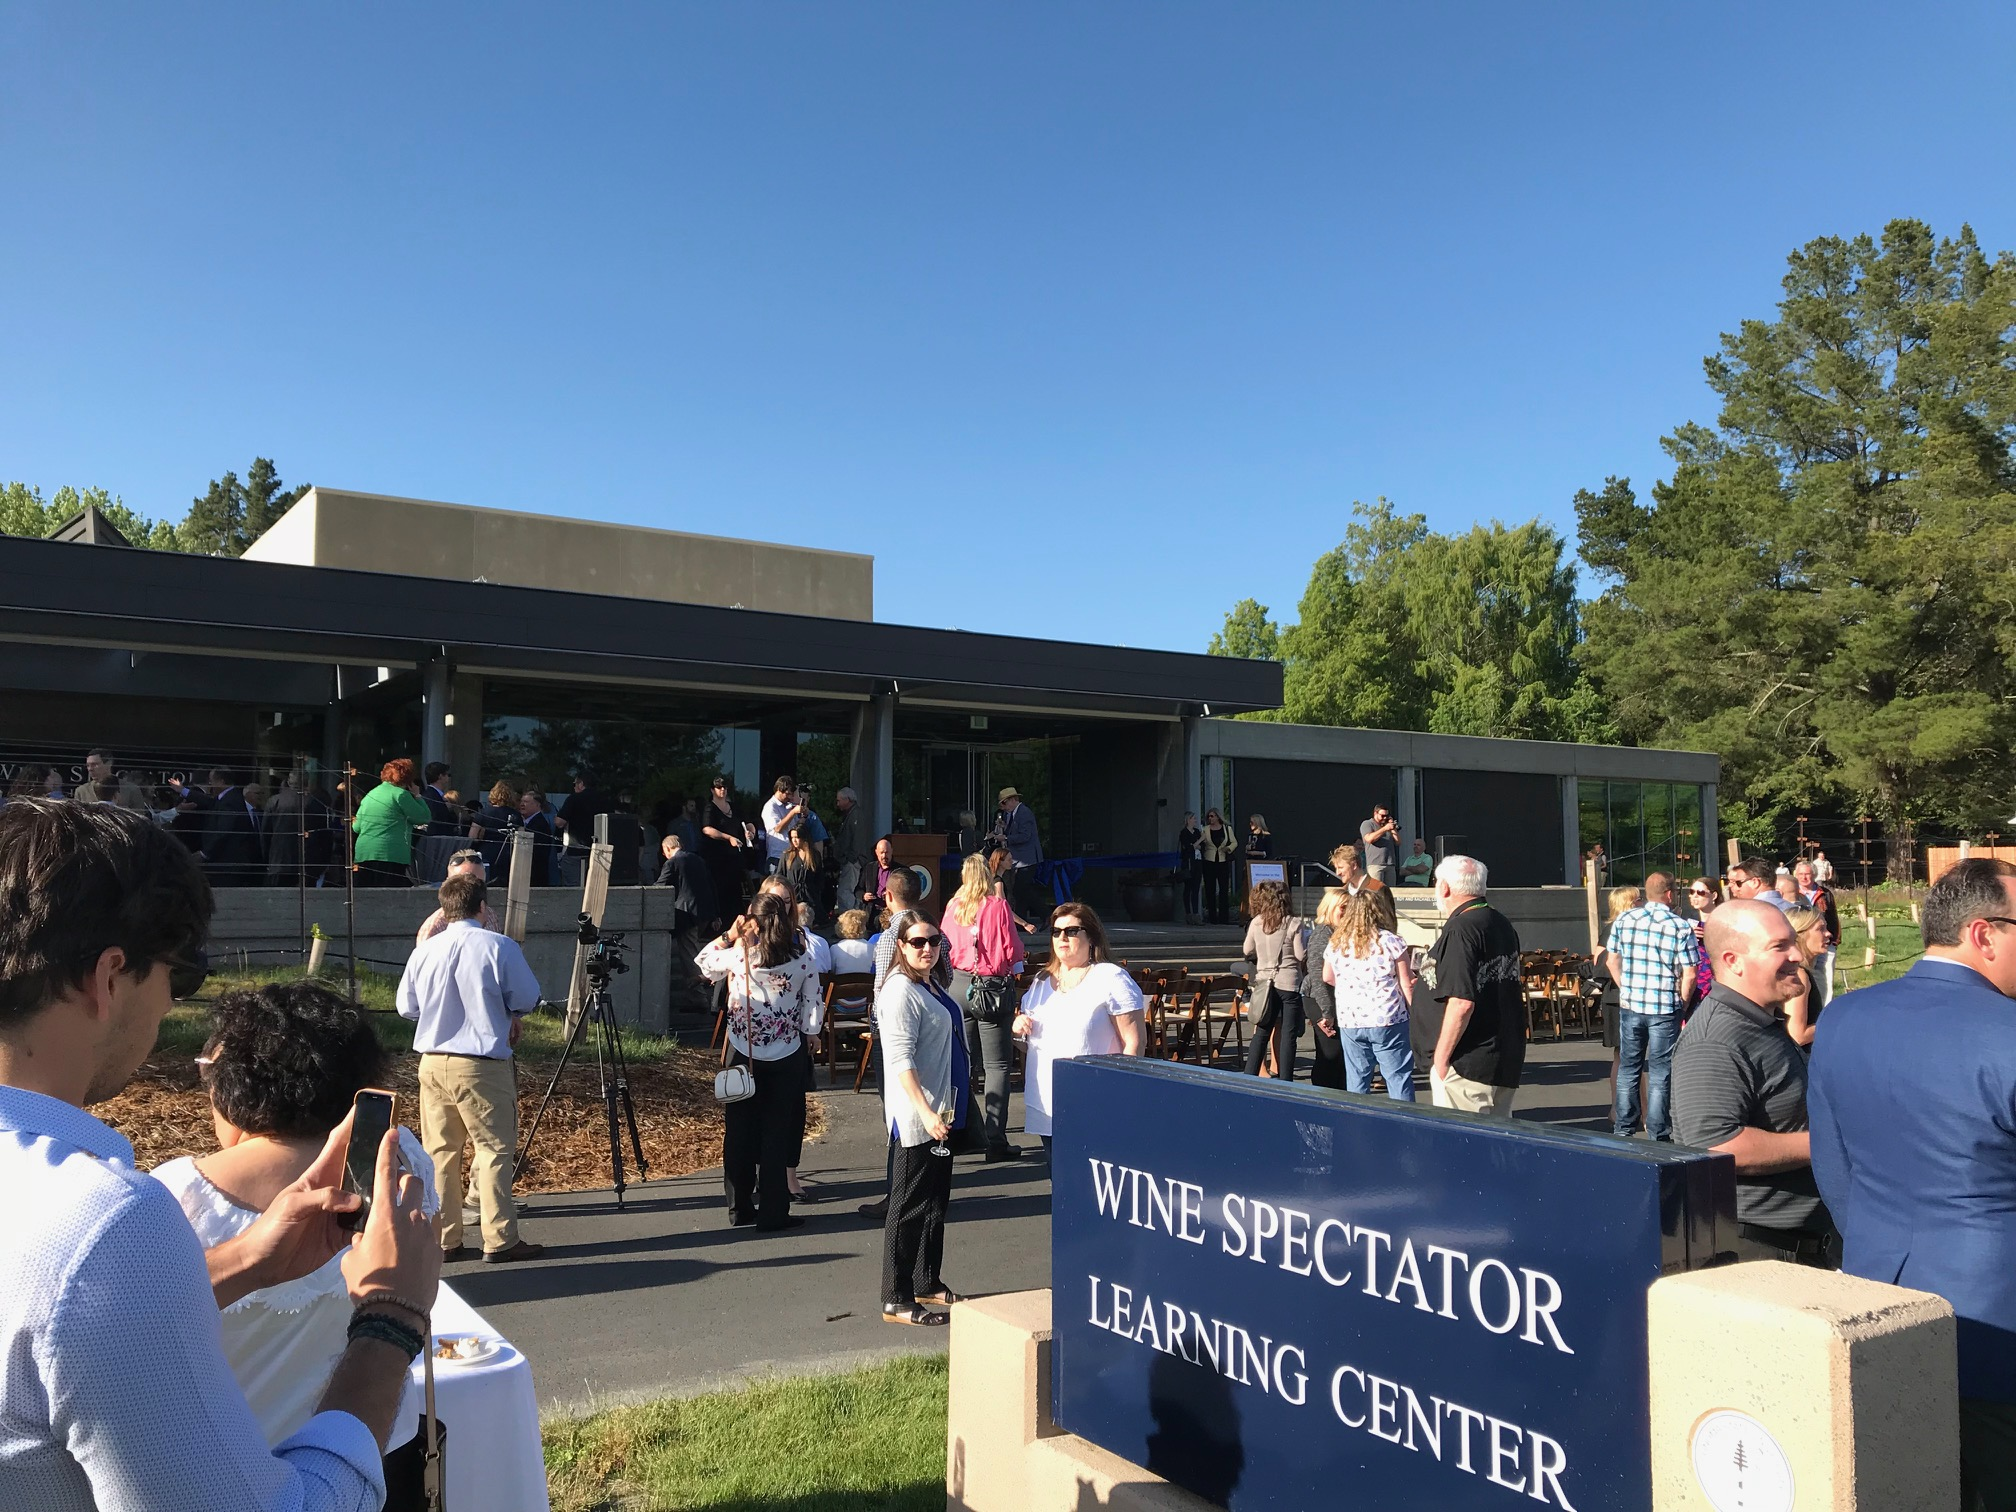 Wine Spectator Learning Center opens at Sonoma State University